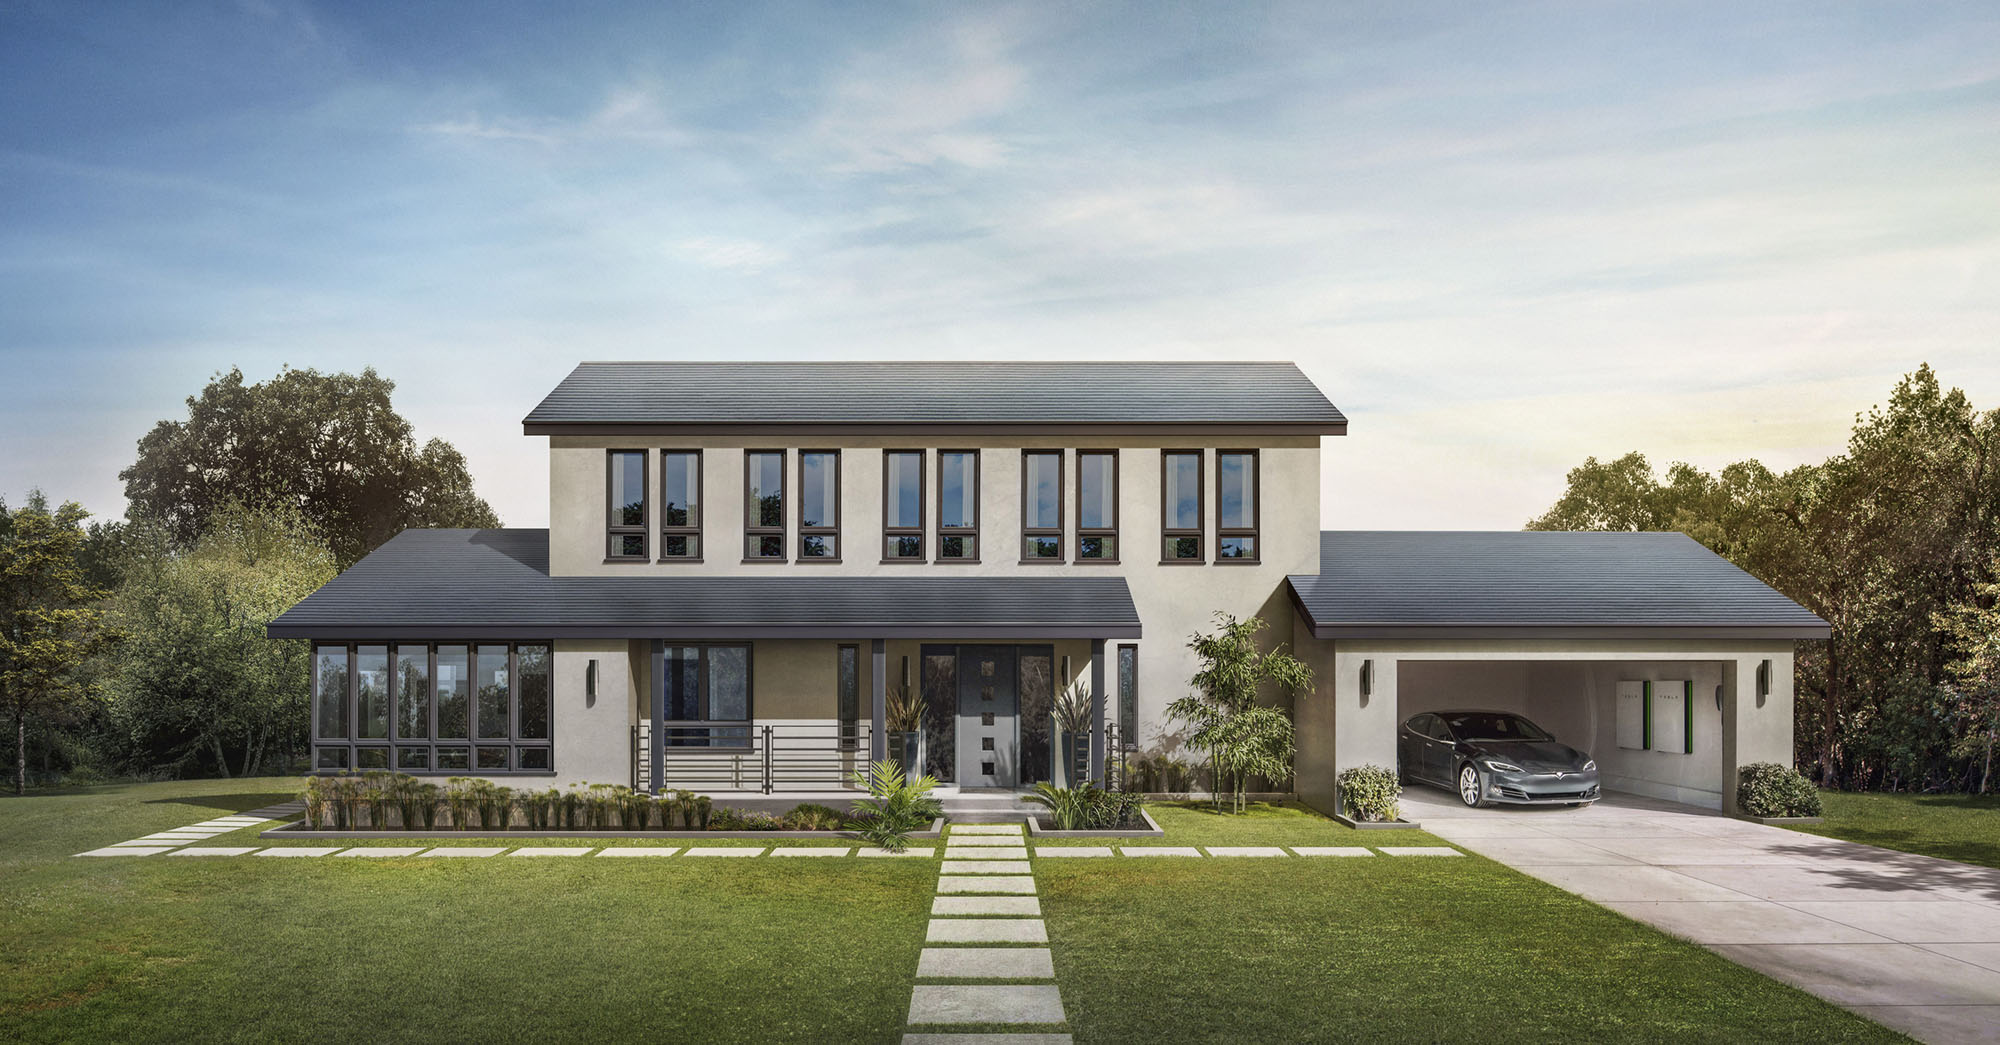 tesla-solar-roof-smooth-glass.jpg